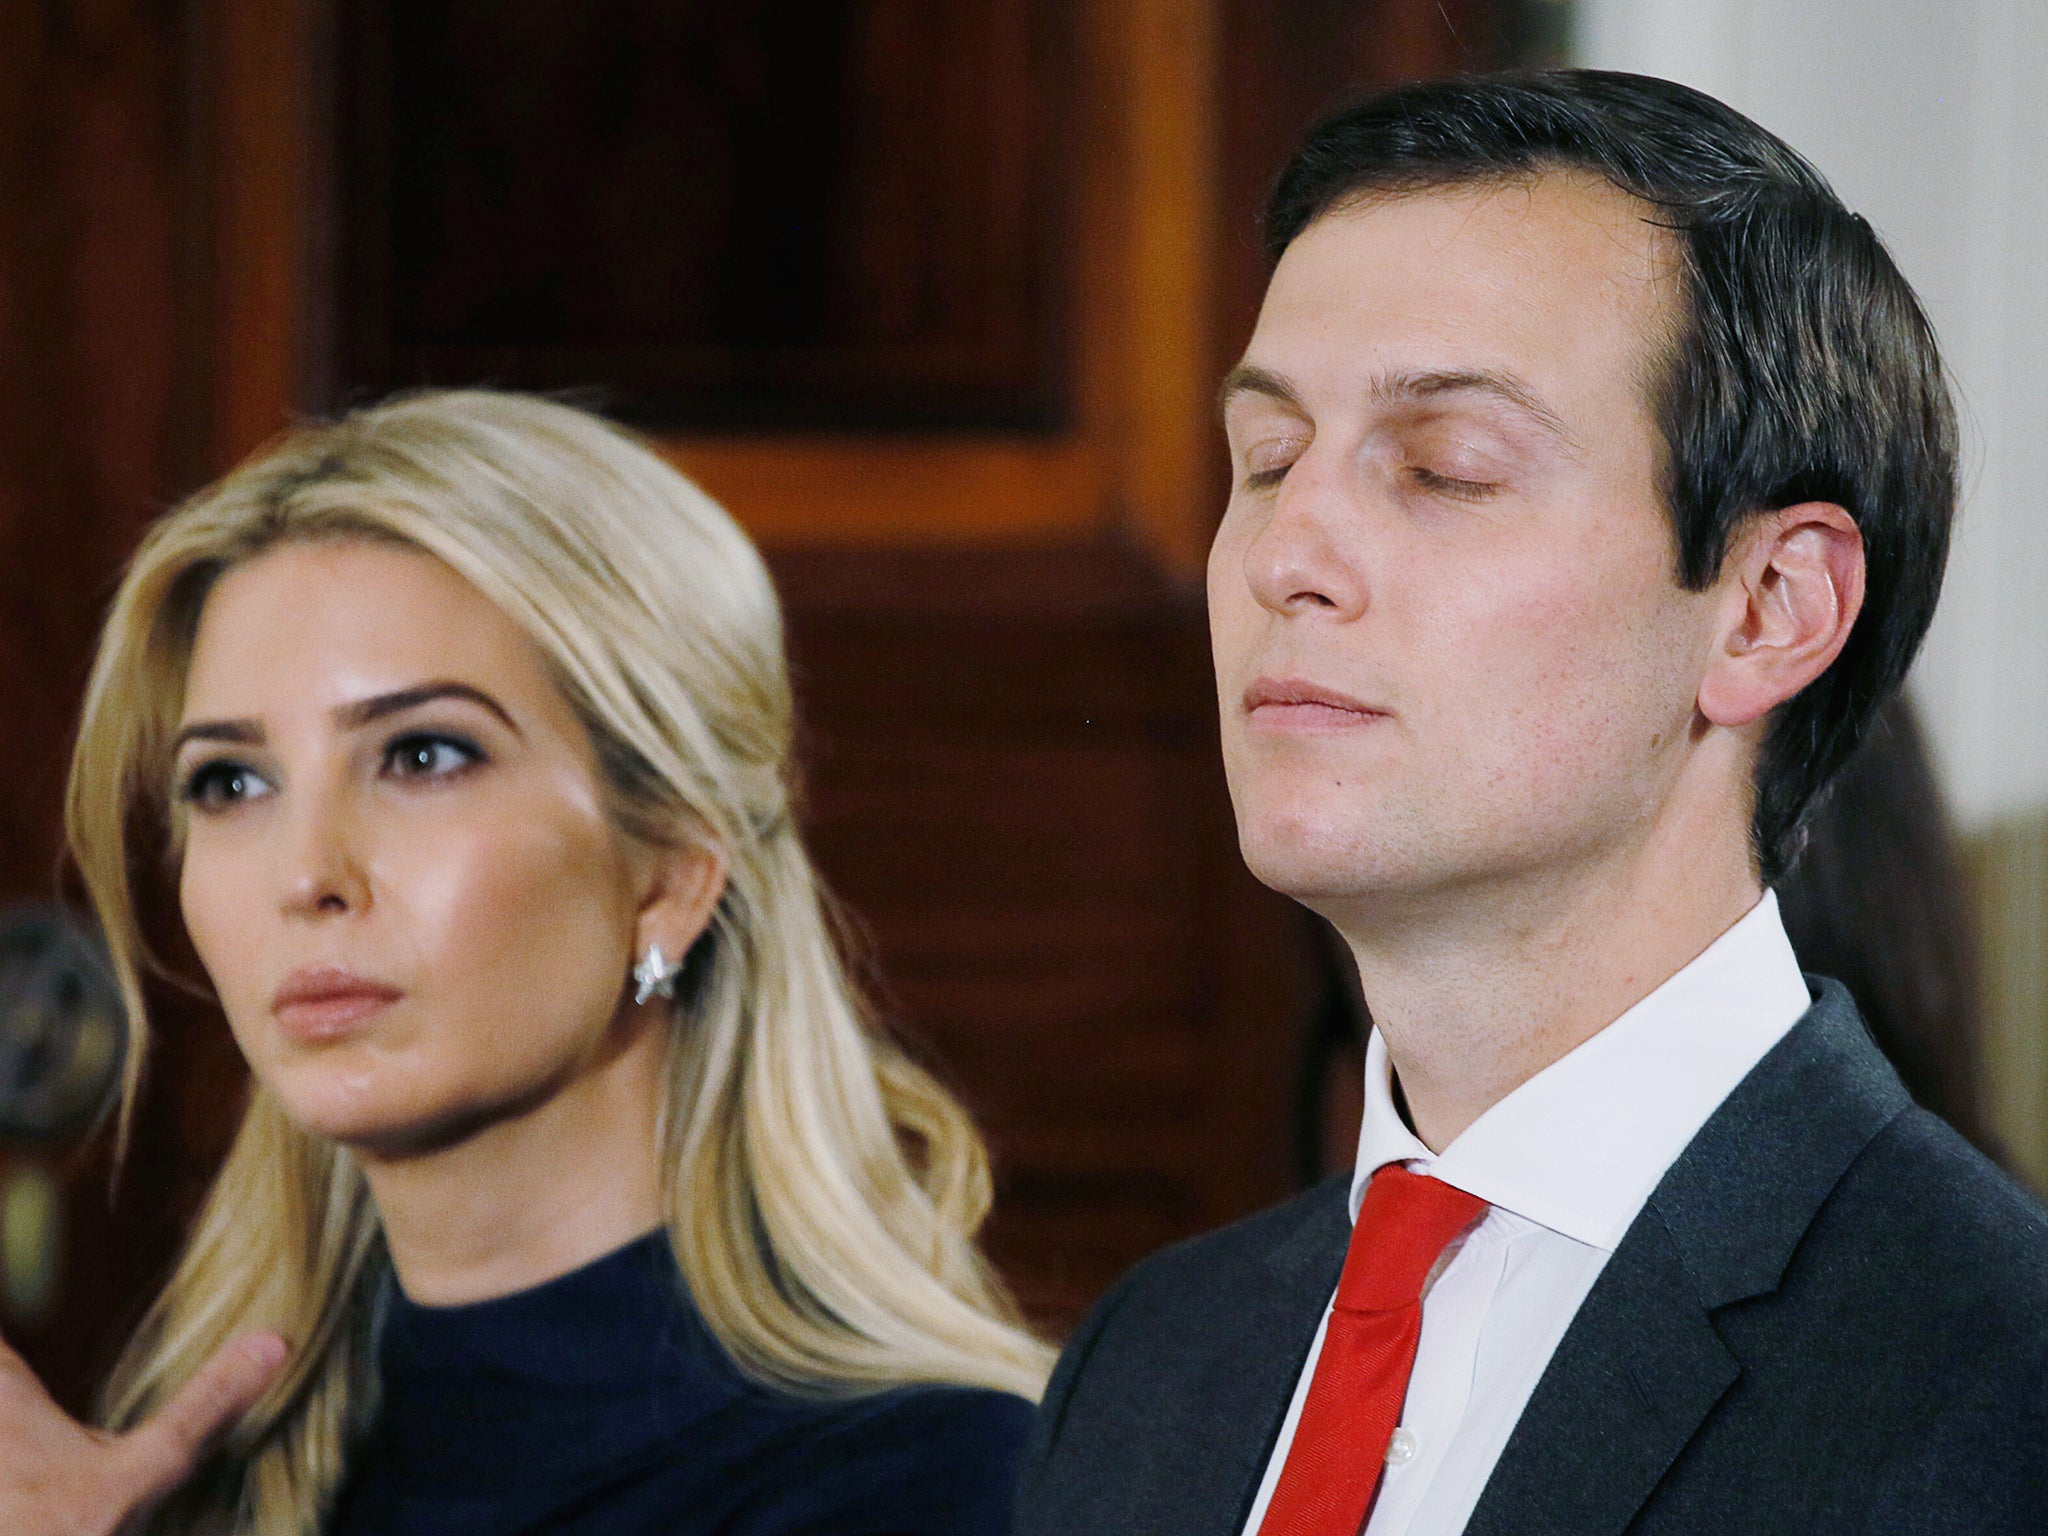 White House investigating Ivanka Trump and Jared Kushner's use of personal emails